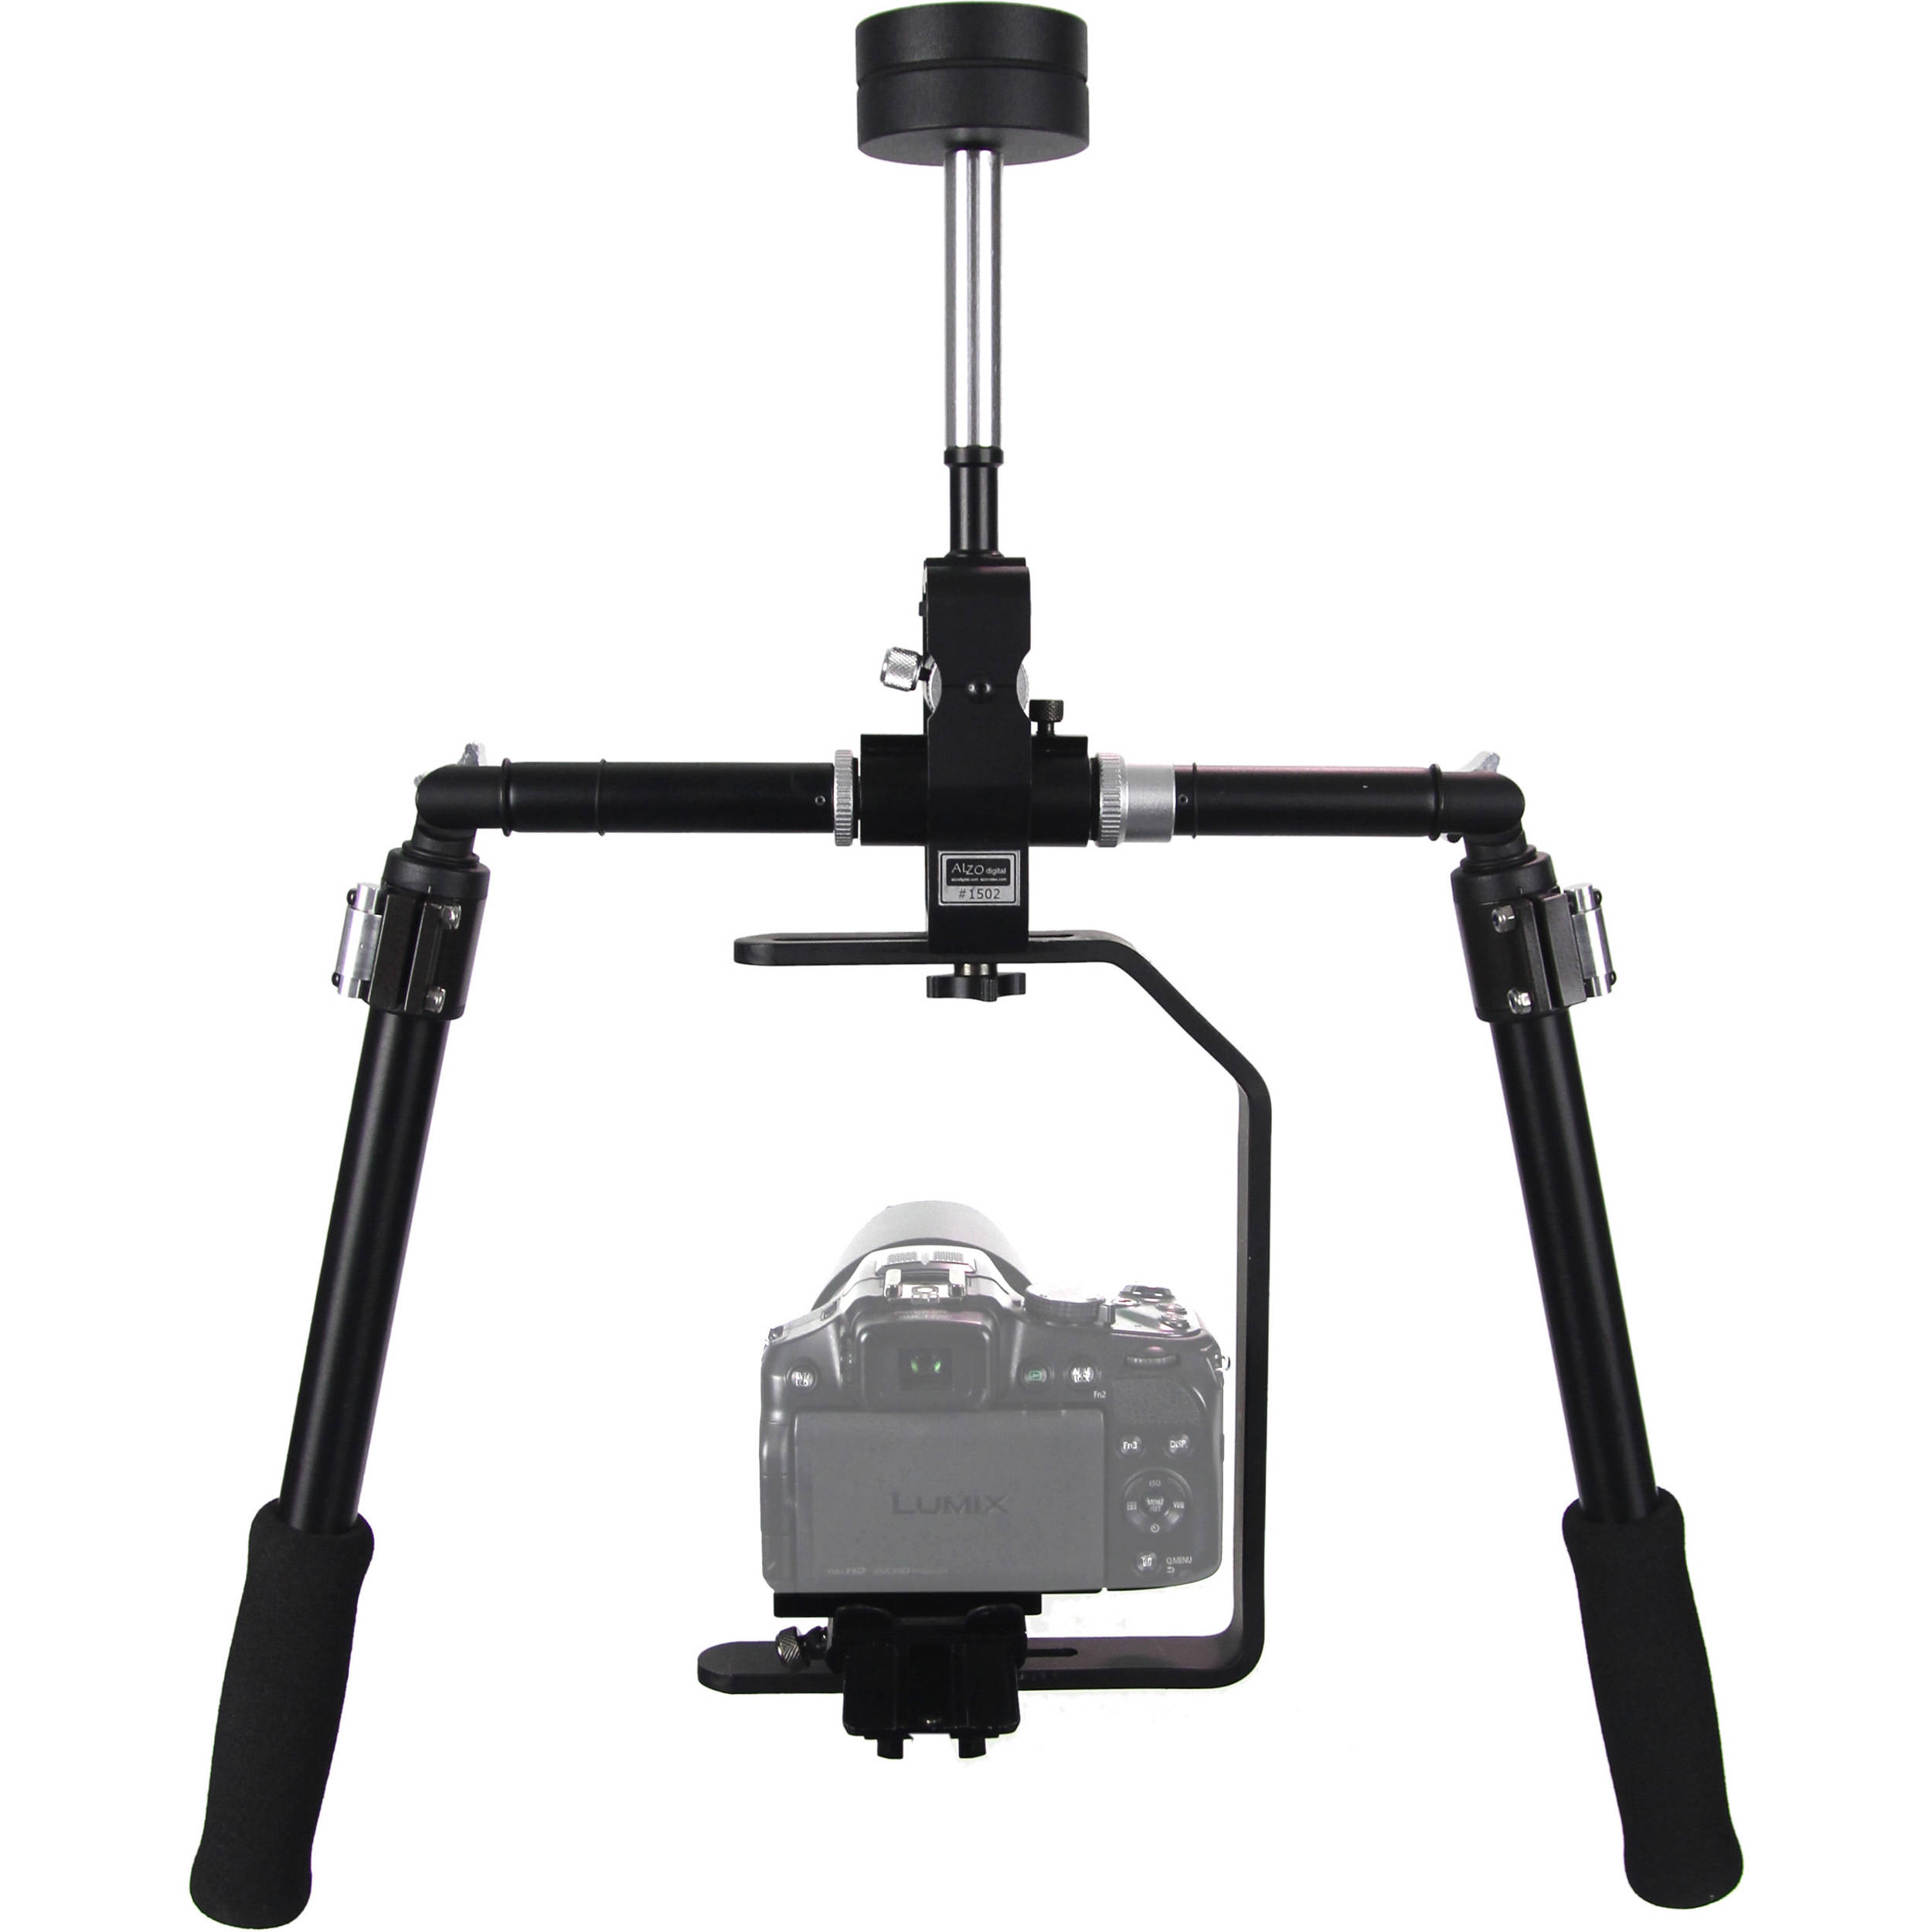 ALZO Smoothy Rig Video Stabilizer